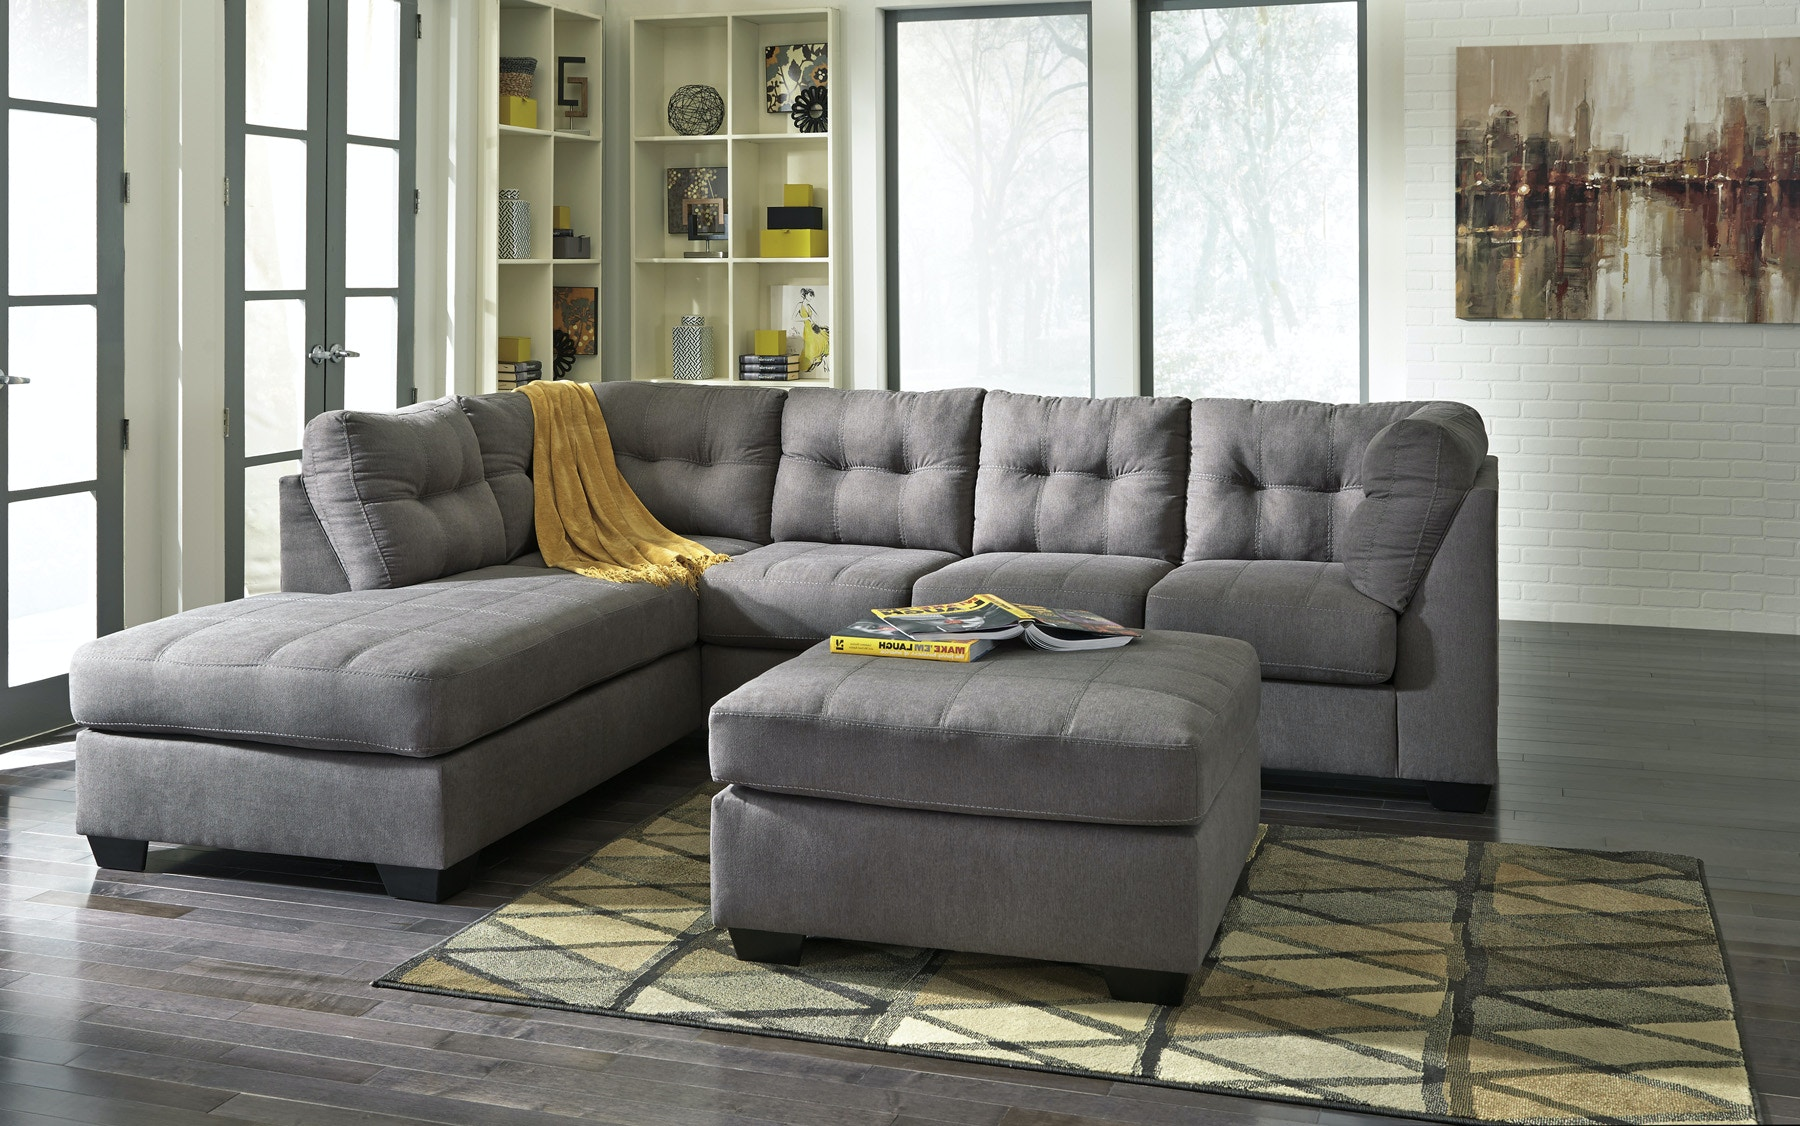 furniture sofa amazon of with prominent large leather oversized and size pouf sofas arm tufted blue for track ottoman microfiber chaise couch alfresco wooden sectional square reversible